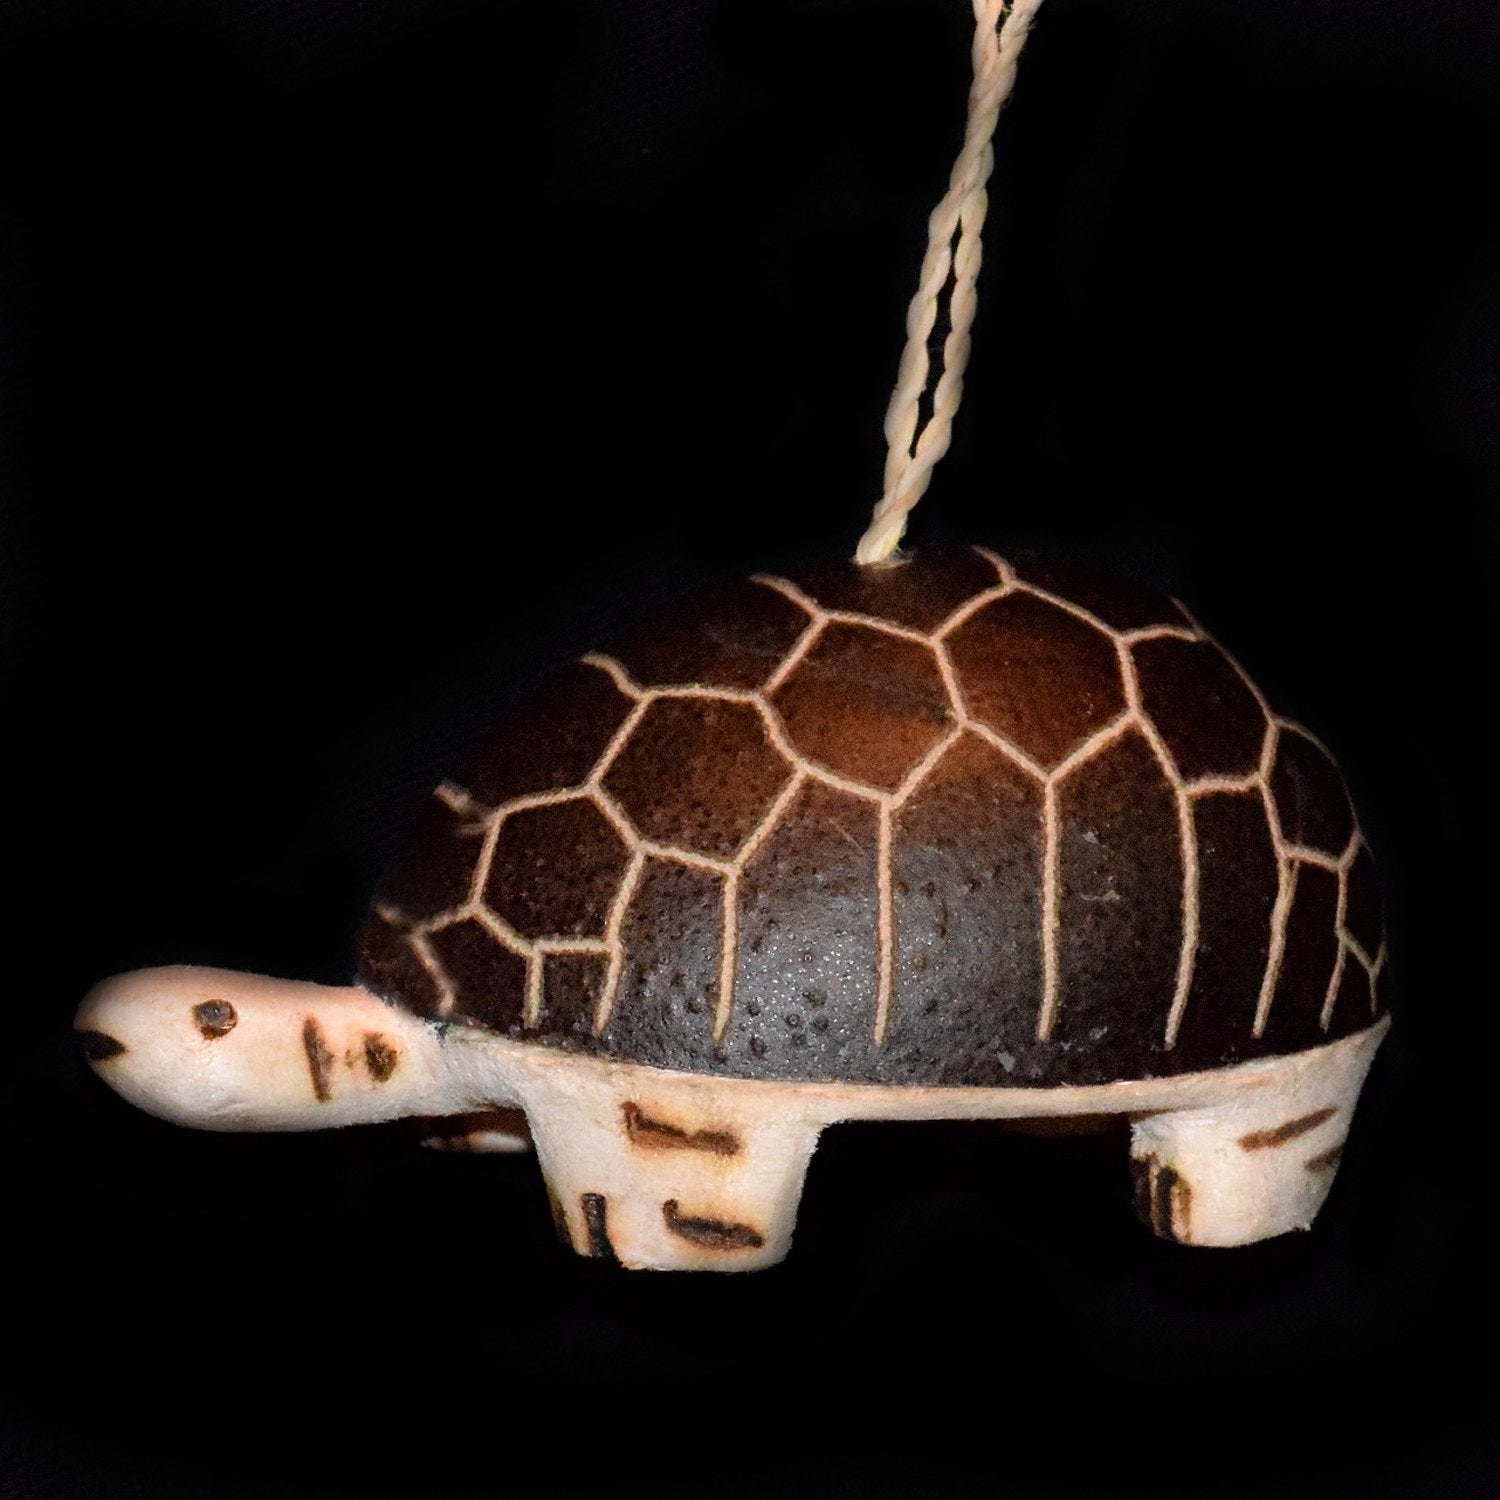 FAIR-TRADE CHRISTMAS TREE BALSA WOOD AND CALABASH POD ORNAMENT - TURTLE - CARVED BY ARTISAN FROM PERUVIAN AMAZON